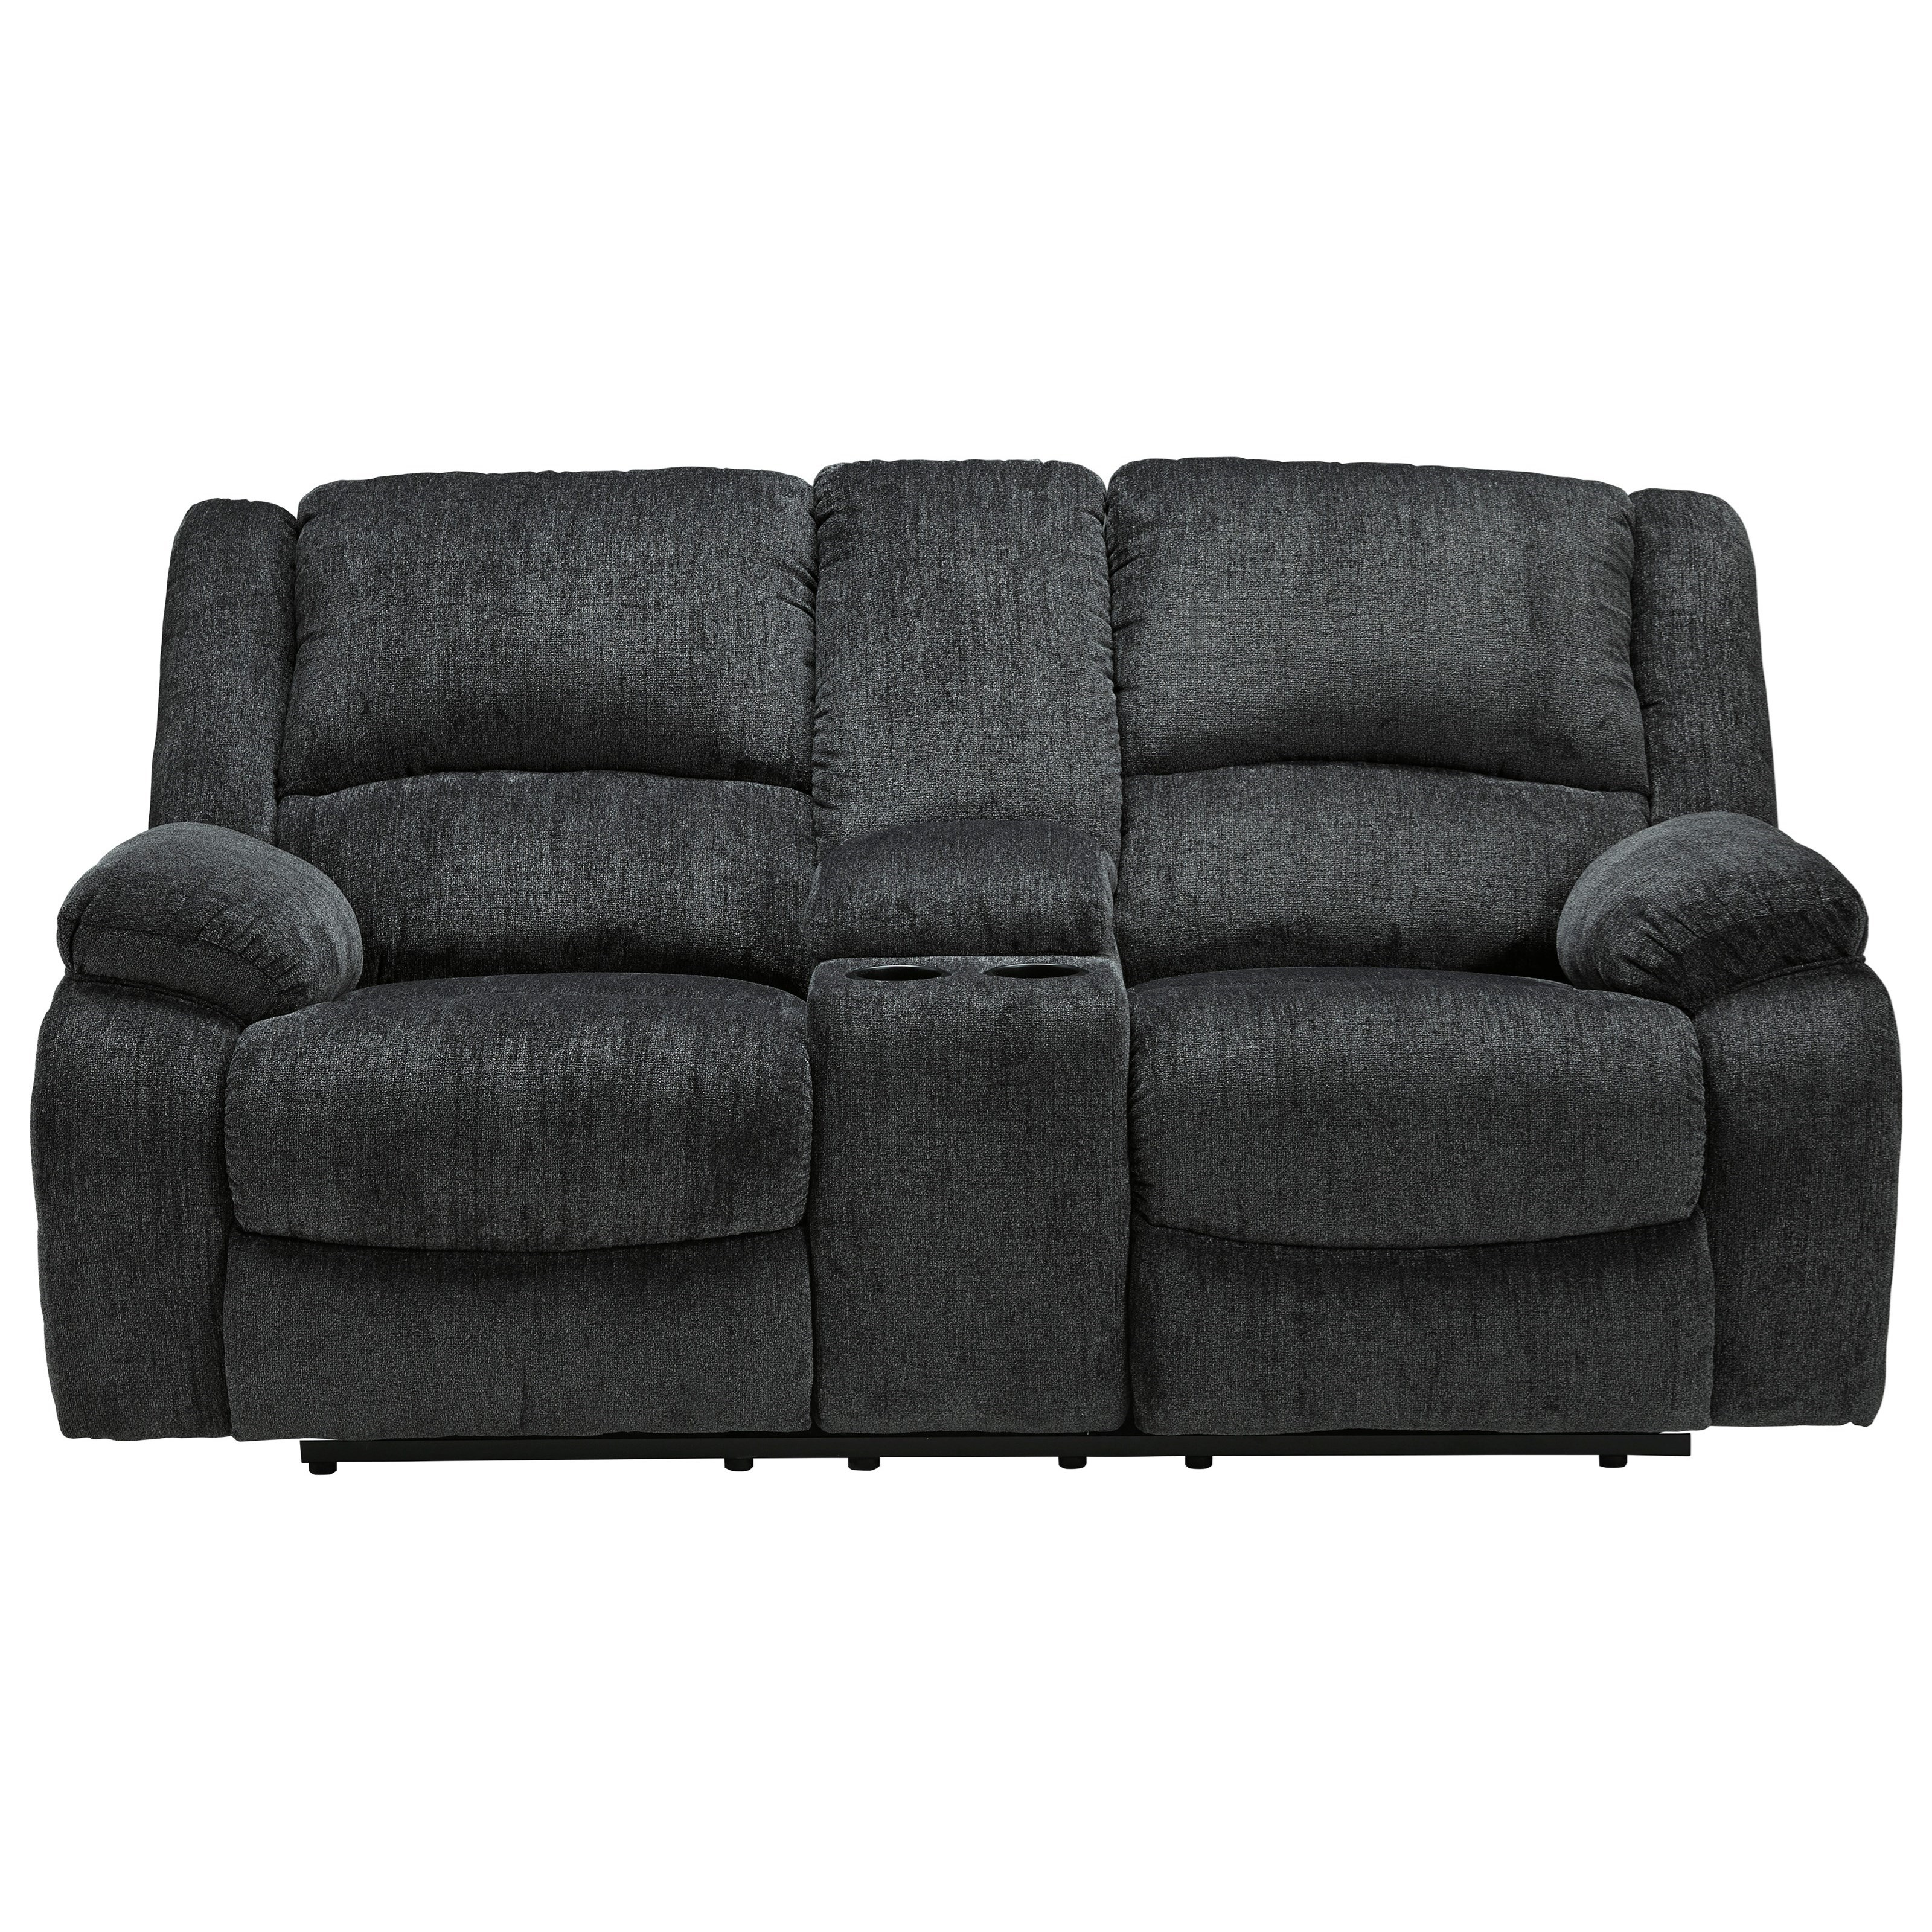 Draycoll Double Reclining Power Loveseat w/ Console by Ashley (Signature Design) at Johnny Janosik